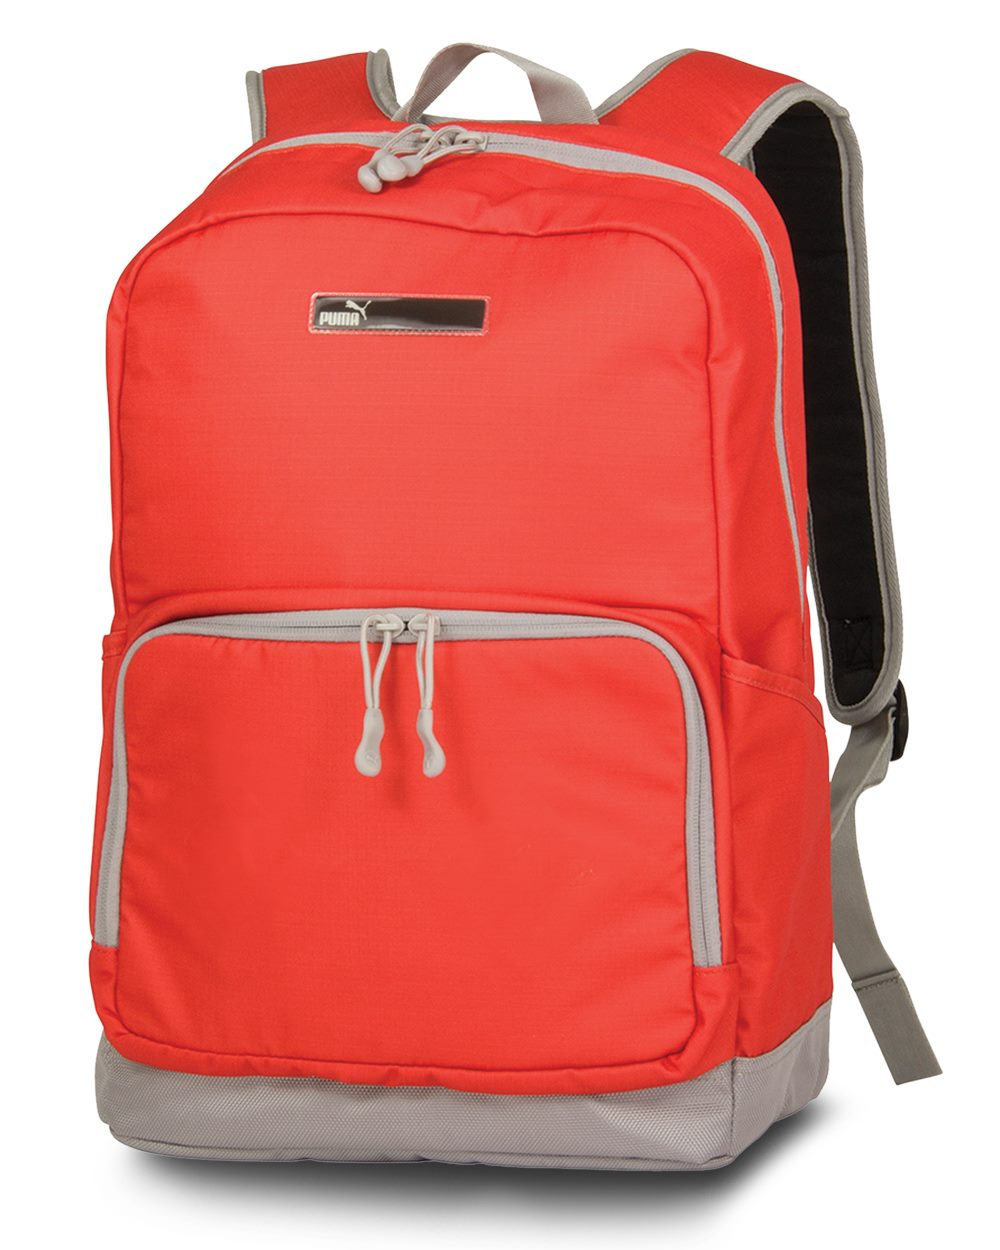 PUMA PSC1004 - Outlander 21.2L Backpack